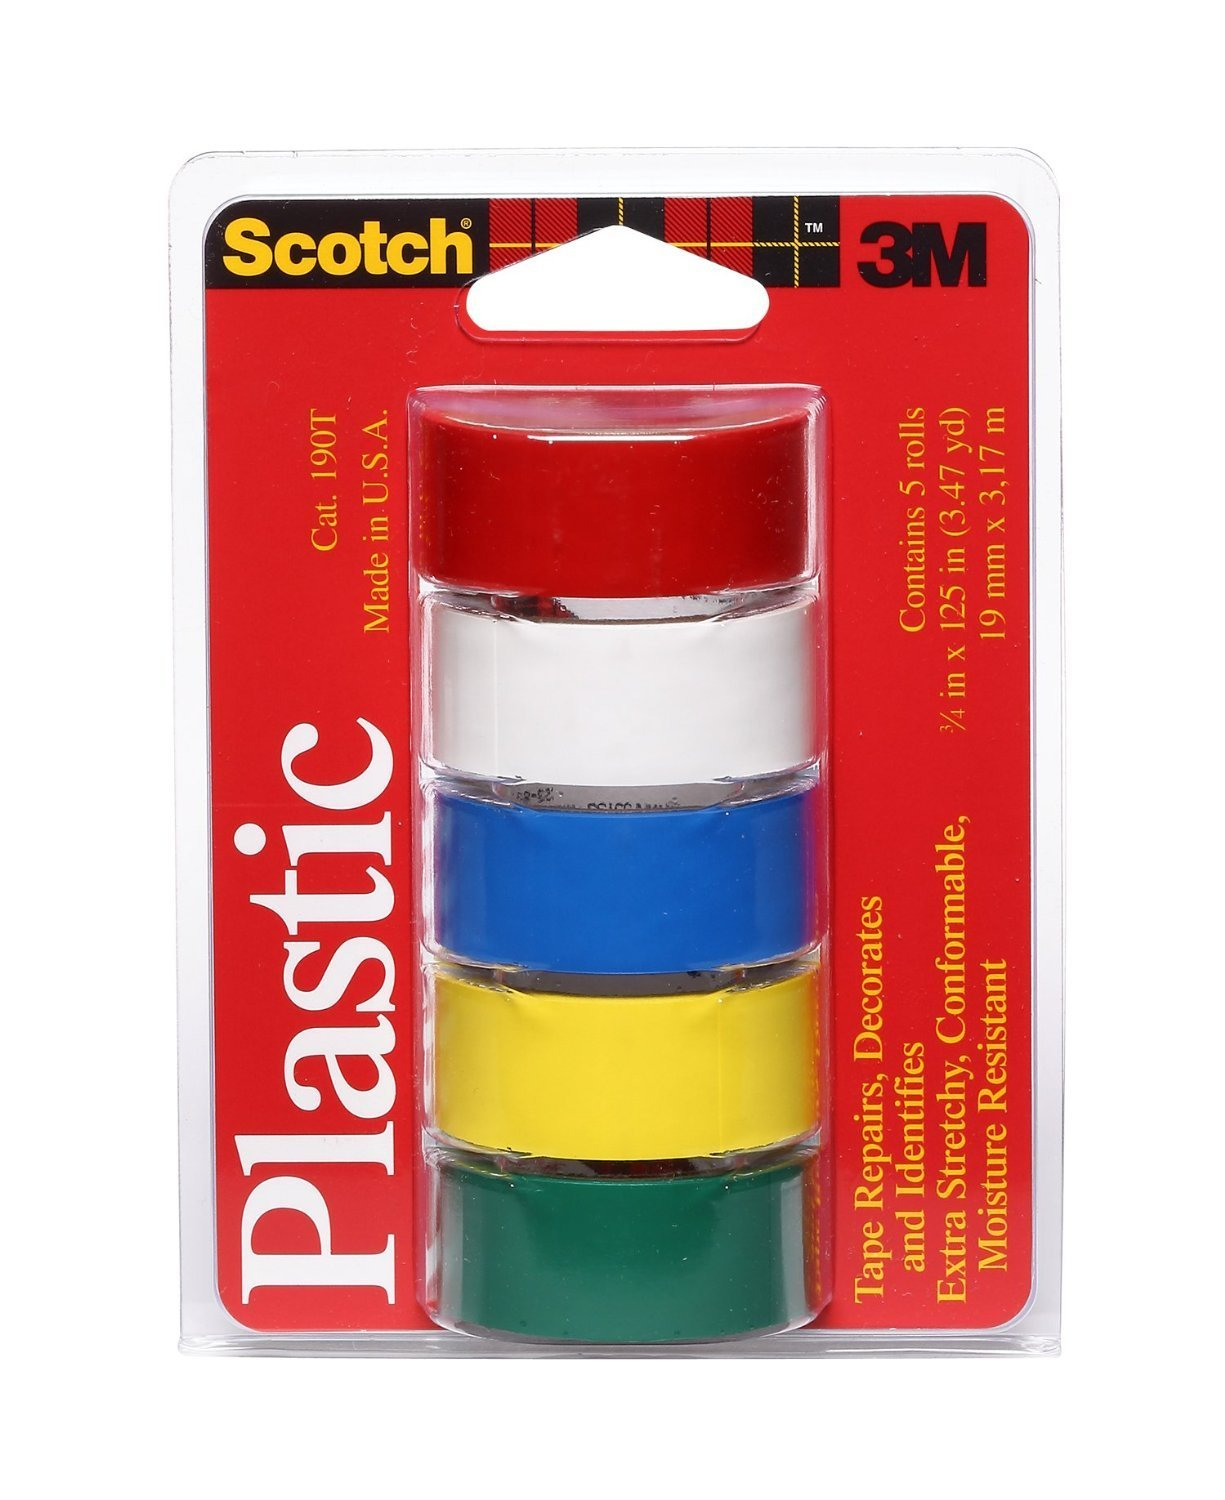 Scotch Super Thin Waterproof Vinyl Plastic Colored Tape Heat Resistant Wiring Tape75 Inch By 125 5 Pack 3m Home Improvement